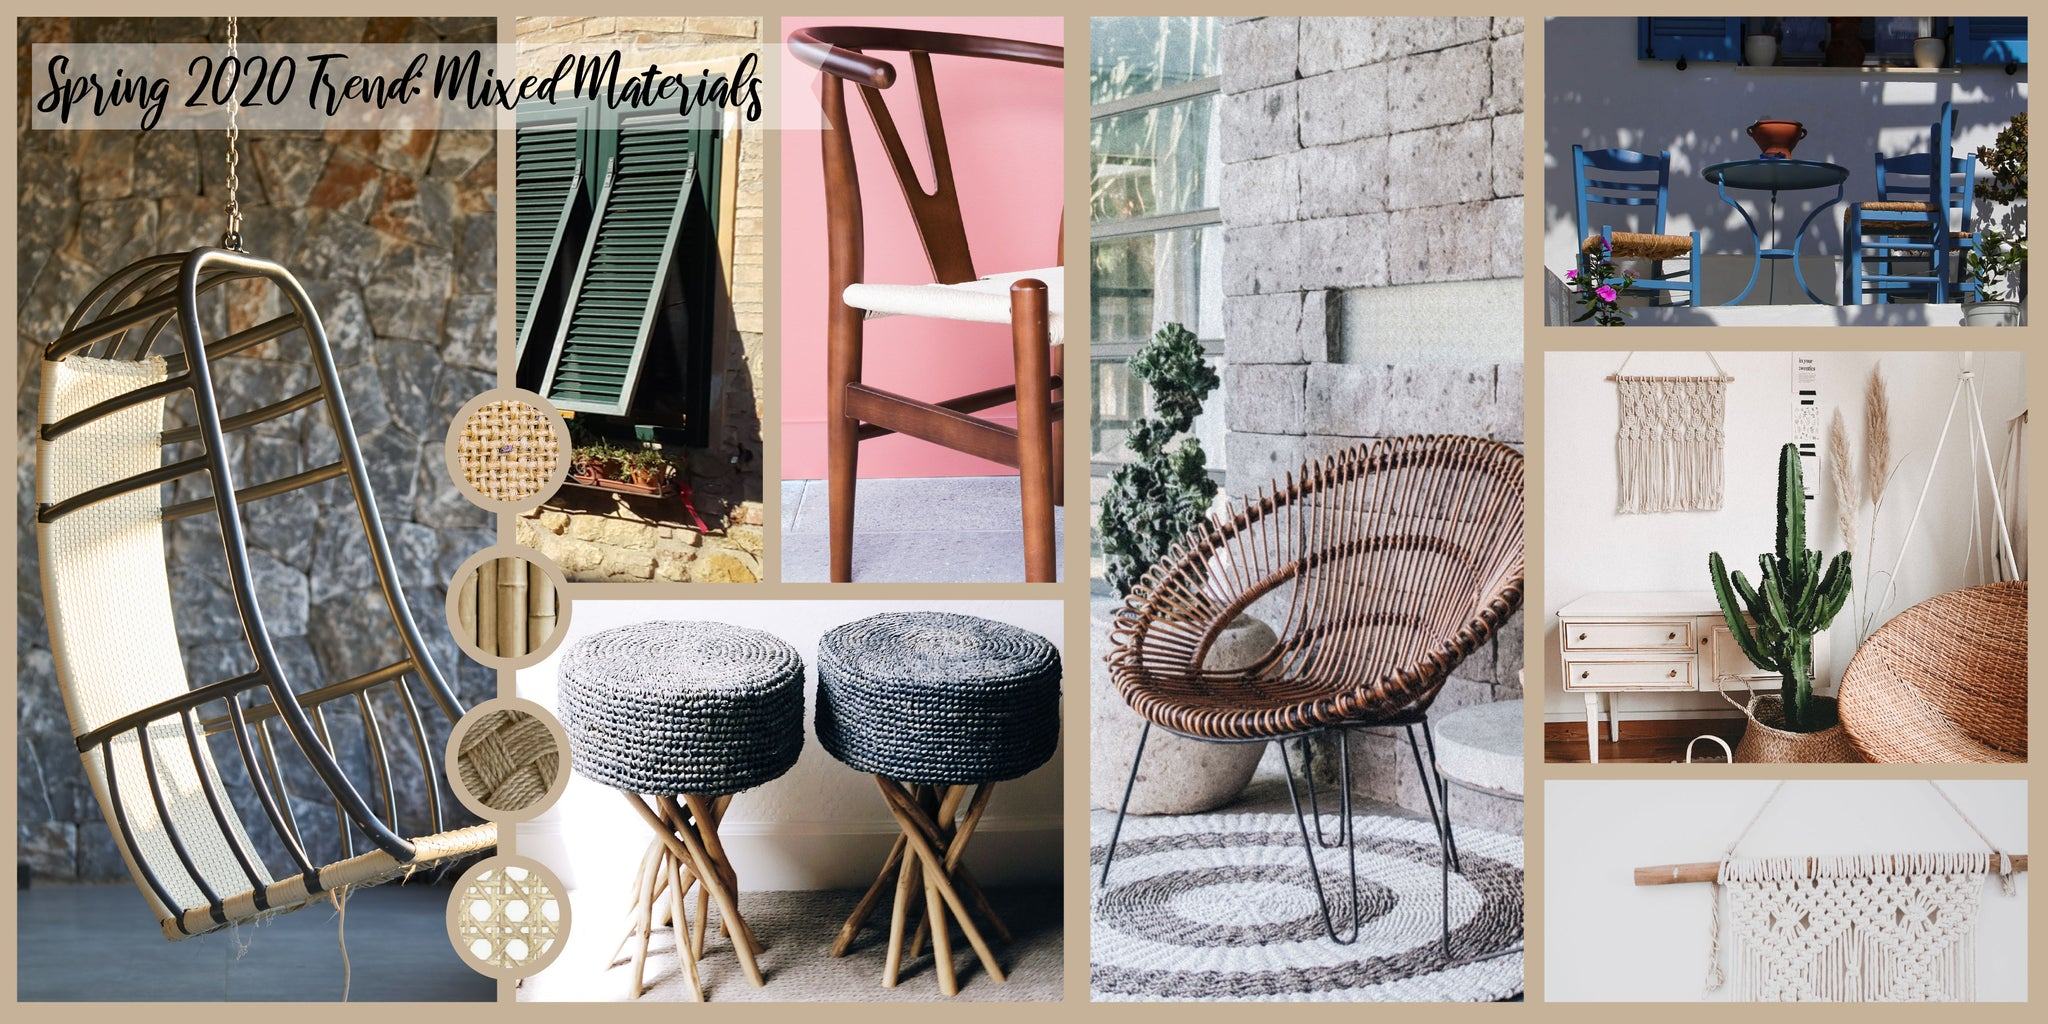 Spring 2020 Decor Trends: Mixed Materials